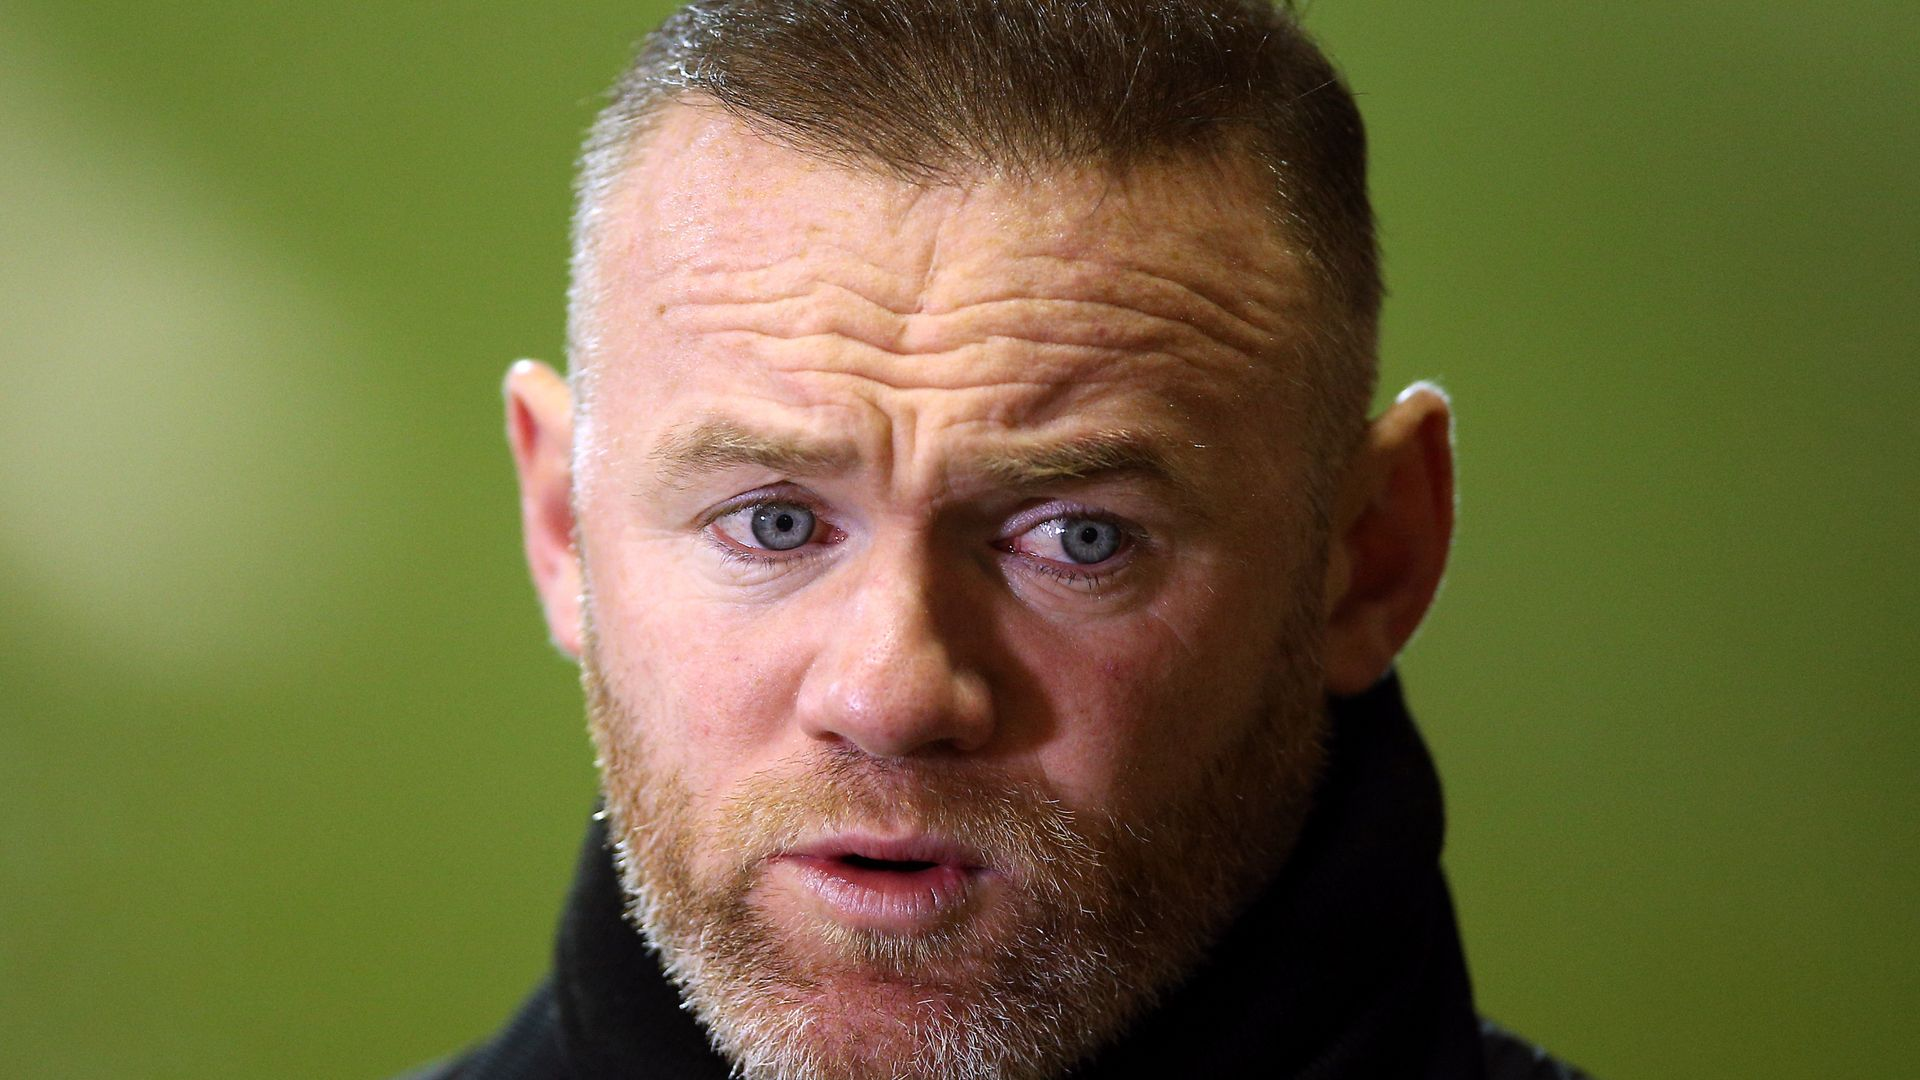 Rotherham chairman responds to Rooney criticism